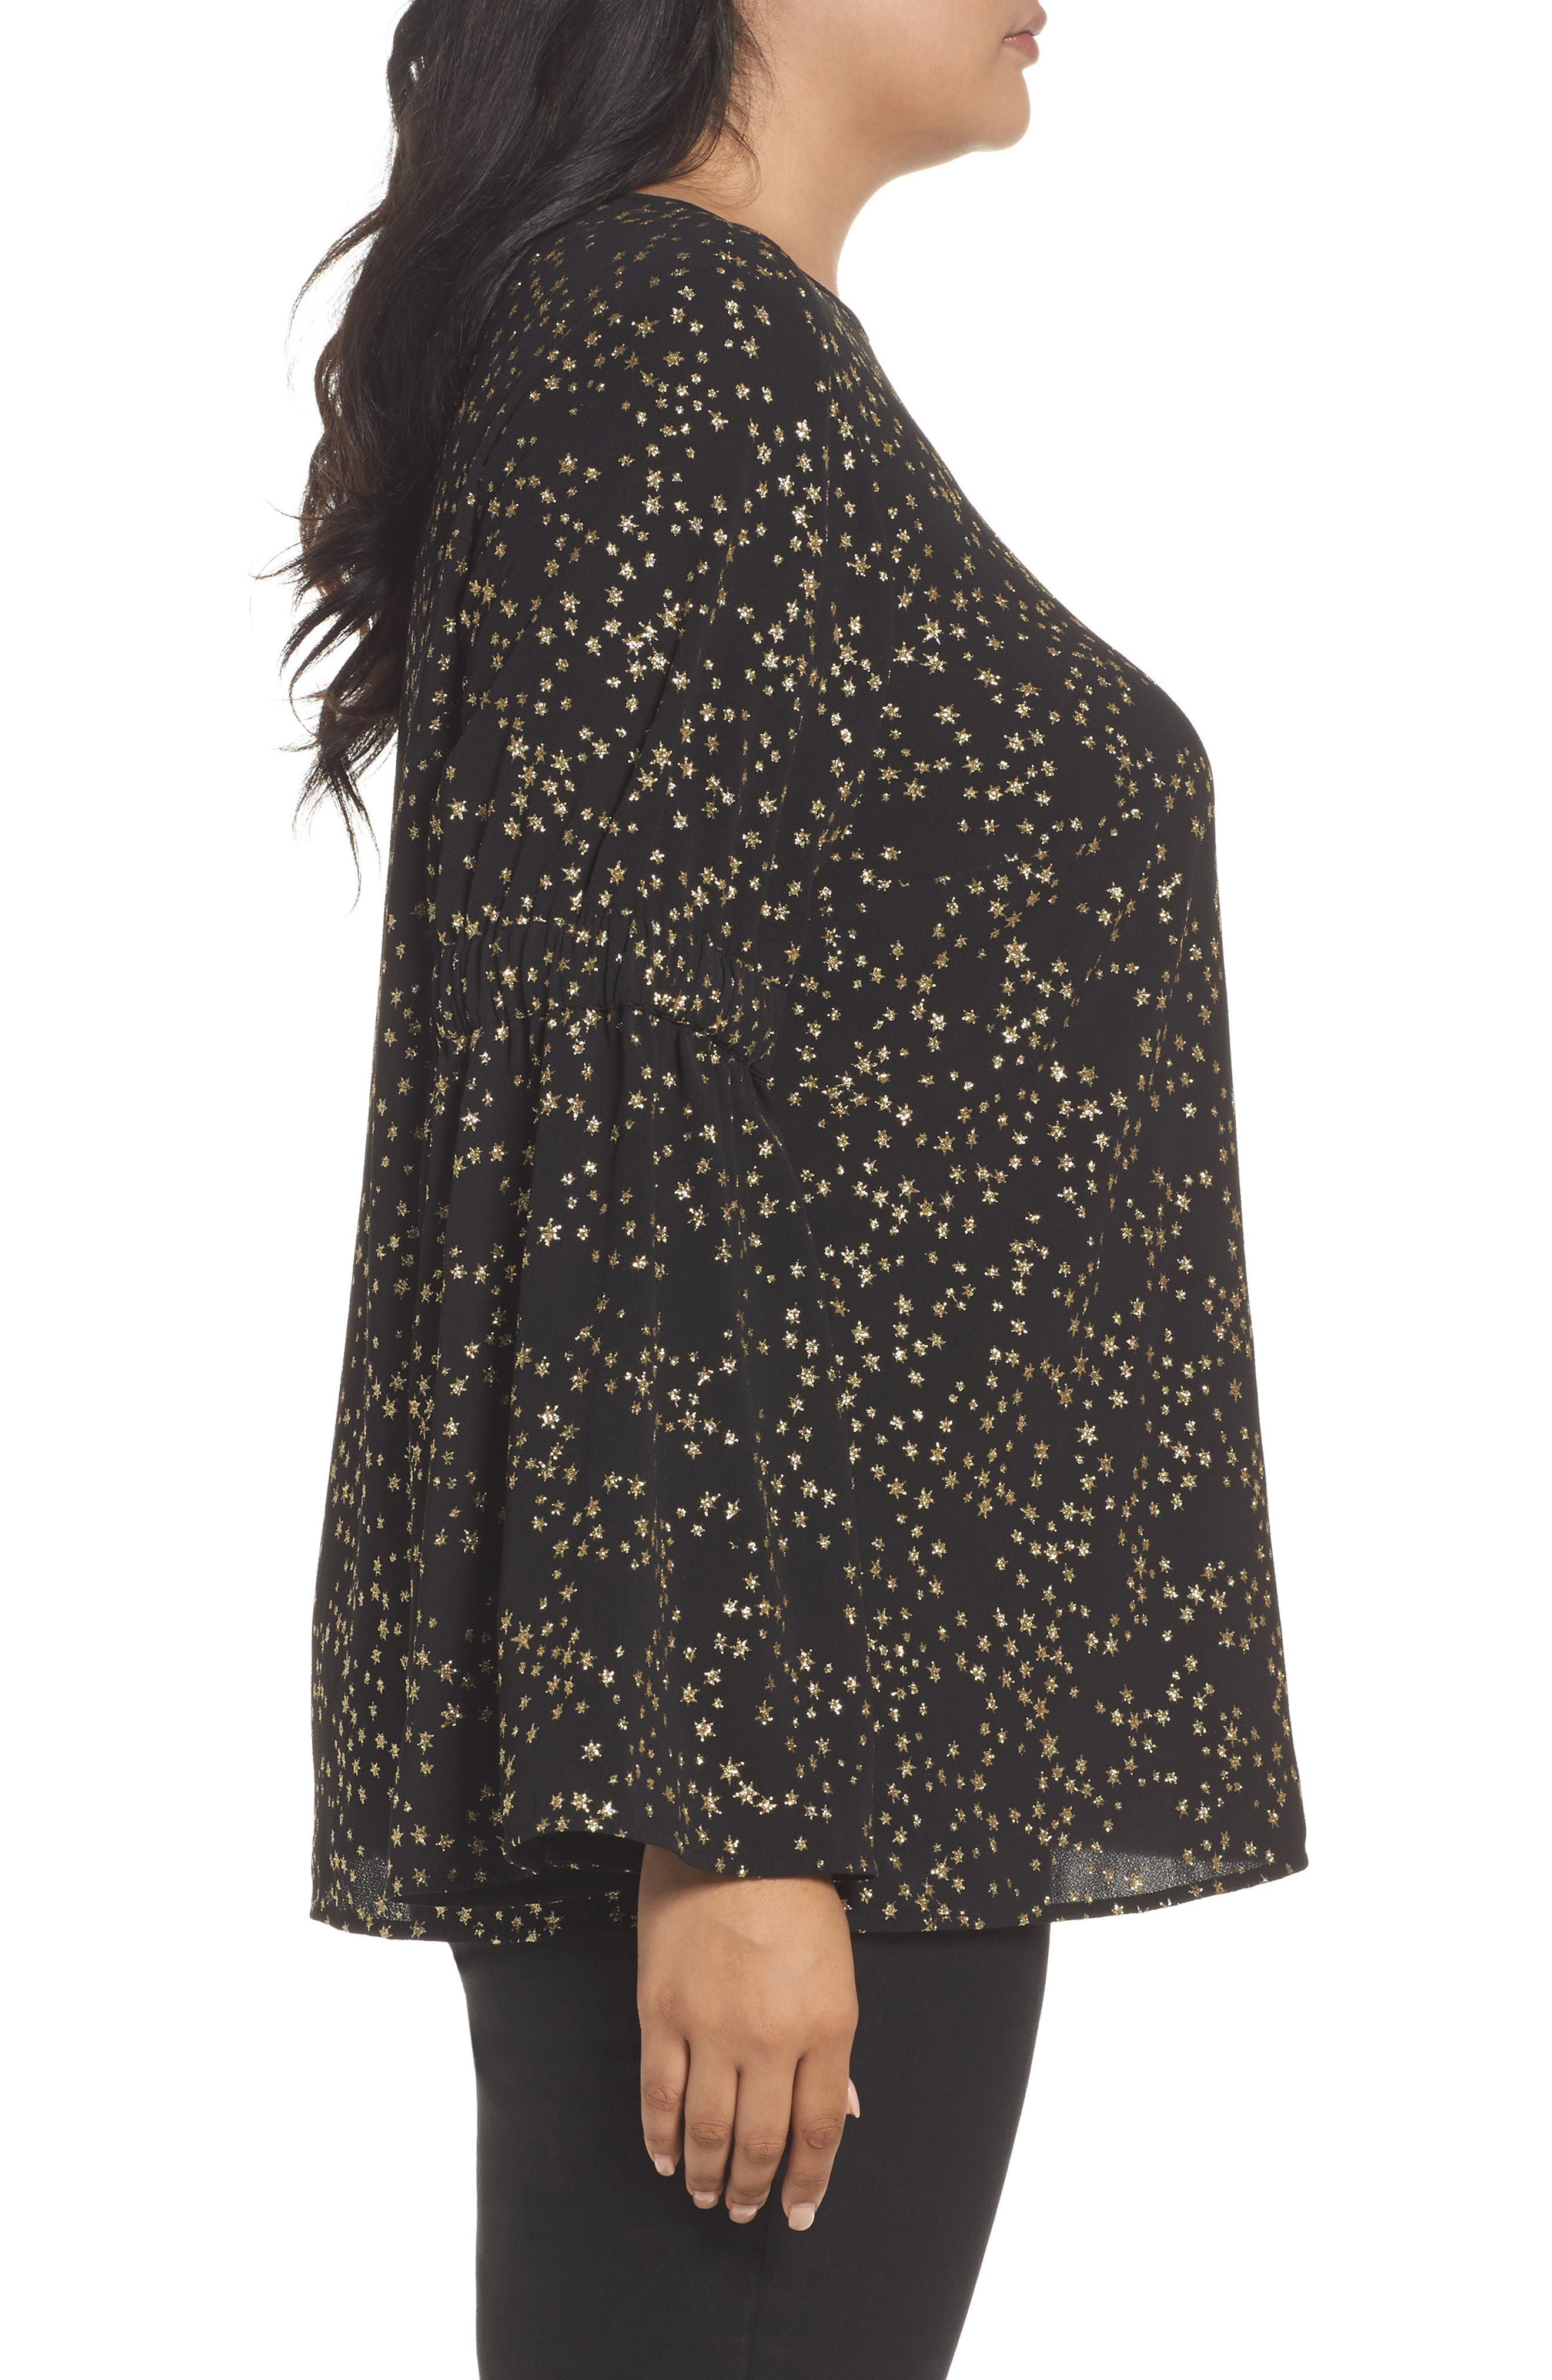 Alternate Image 3  - MICHAEL Michael Kors Shooting Star Bell Sleeve Top (Plus Size)